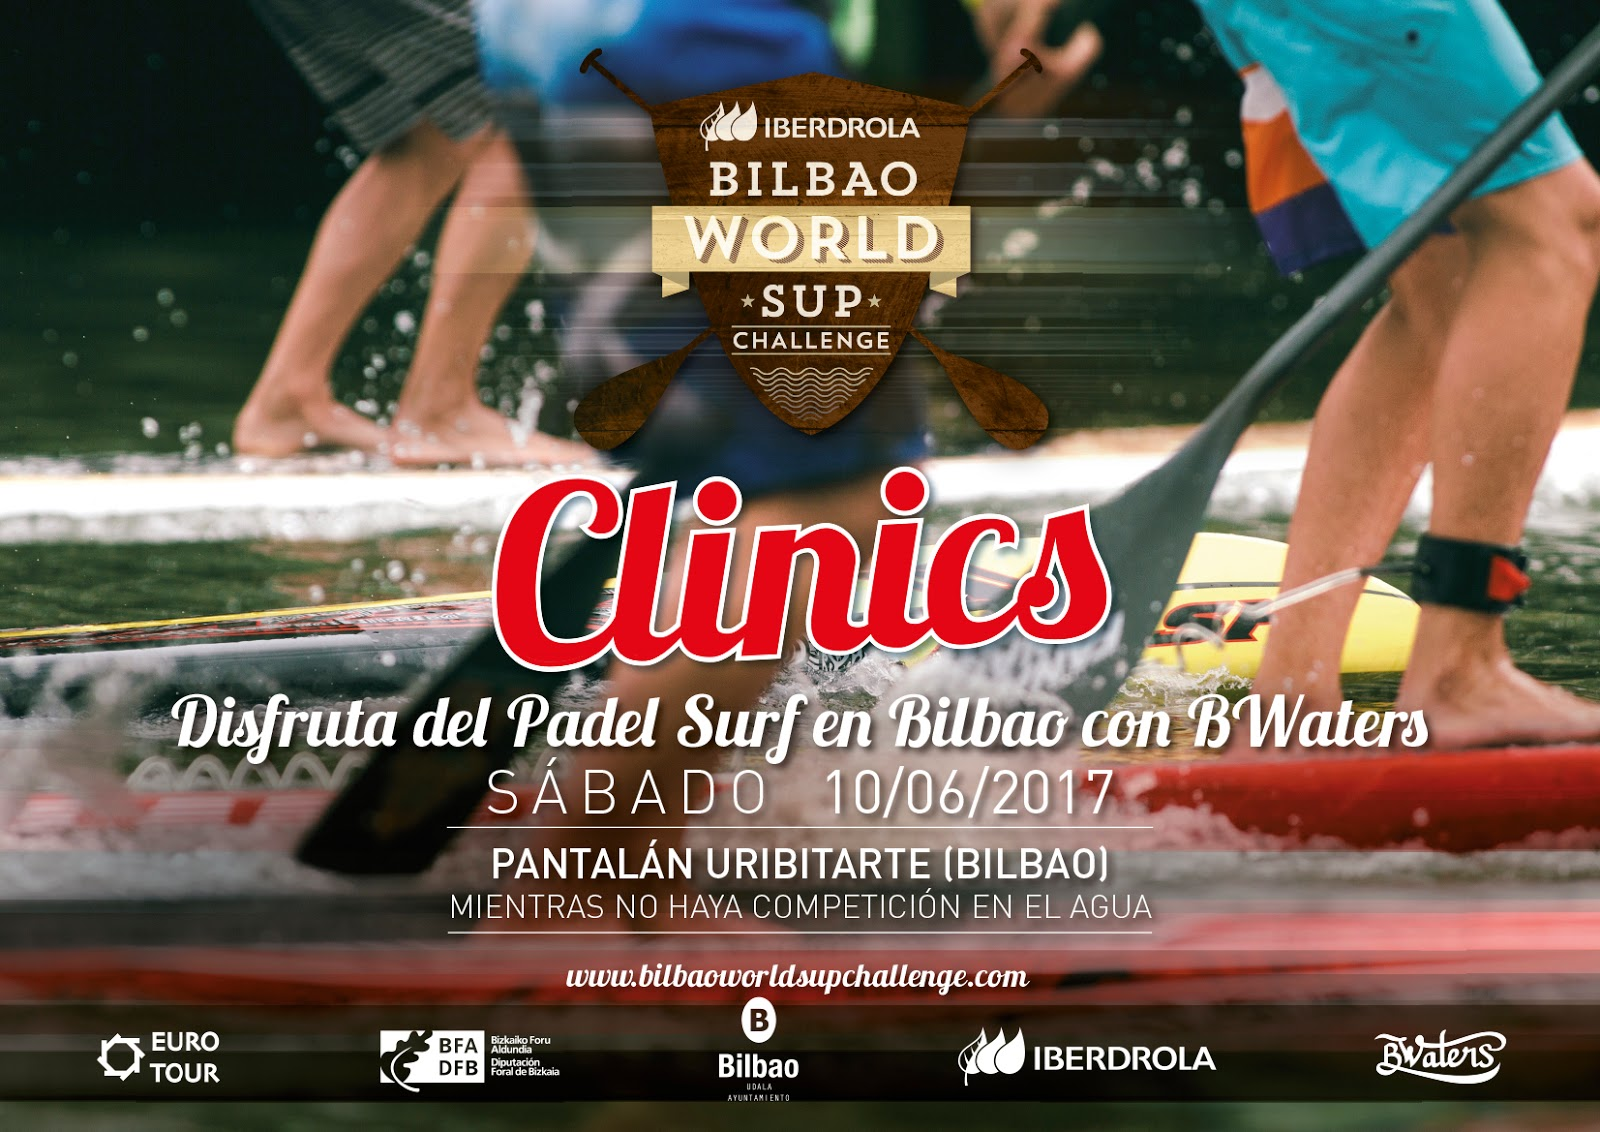 CARTEL CLINICS 2017 RSS